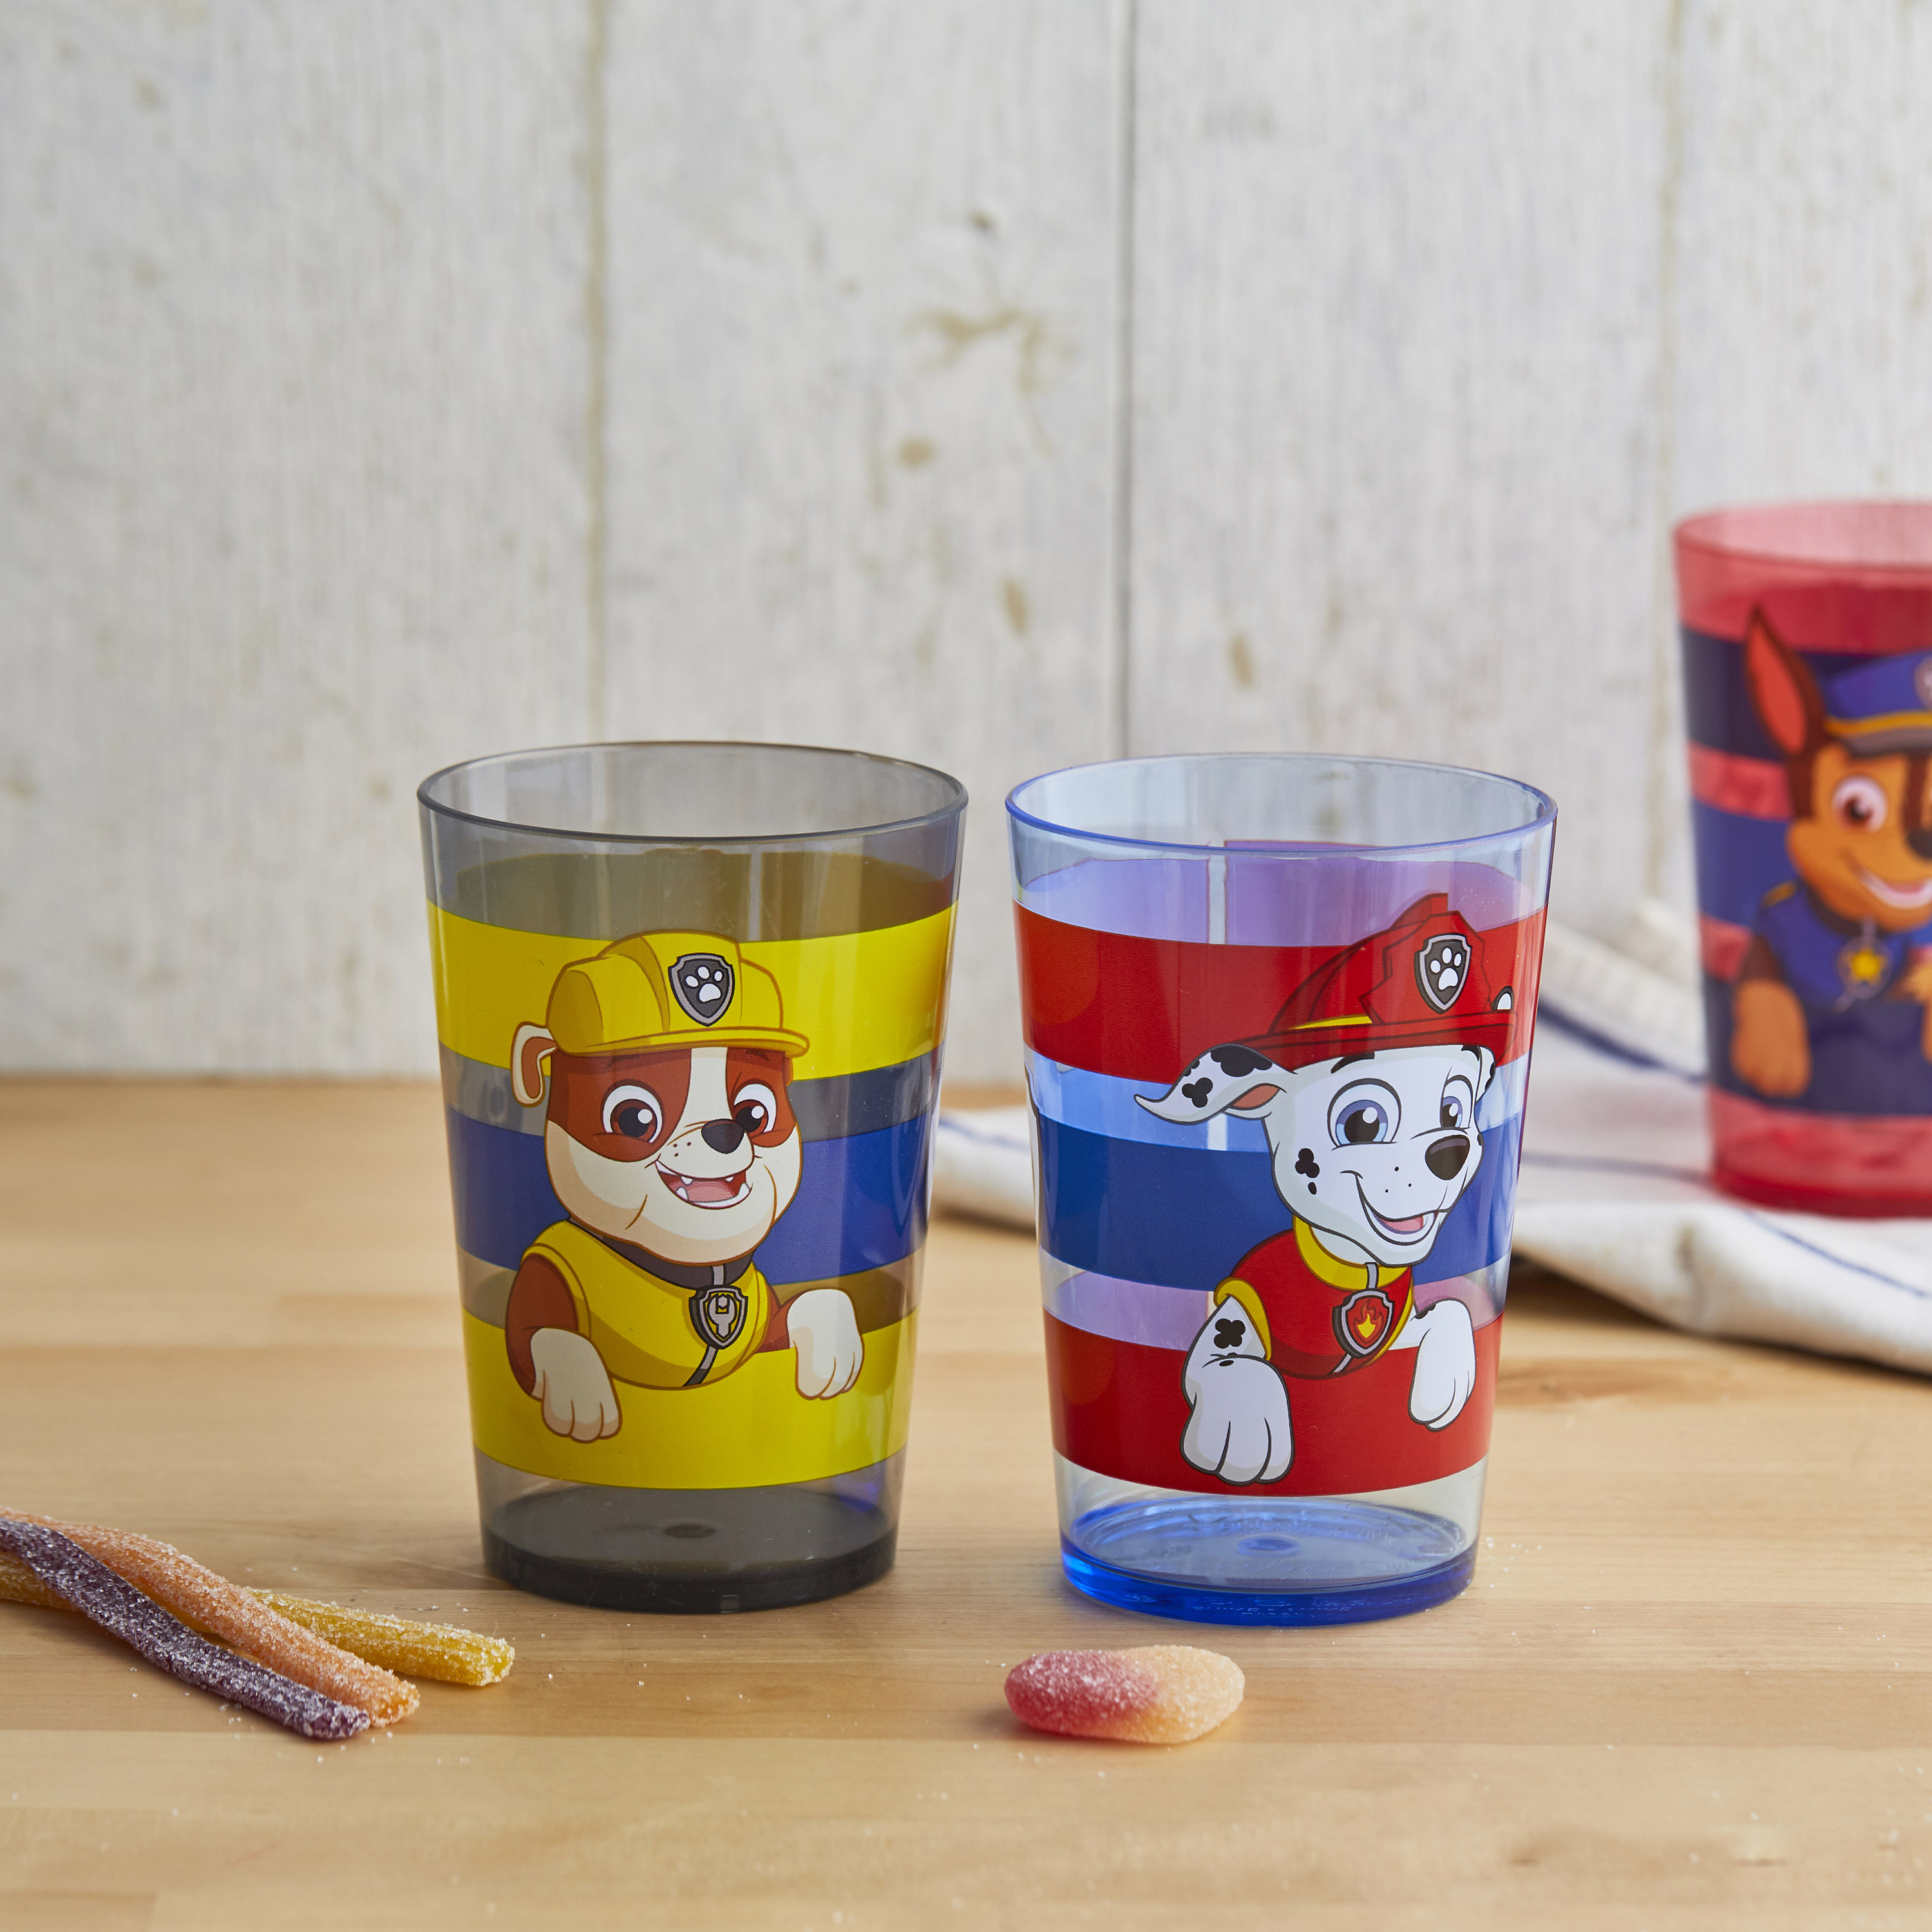 Paw Patrol 14.5 ounce Tumbler, Chase, Skye and Friends, 4-piece set slideshow image 2